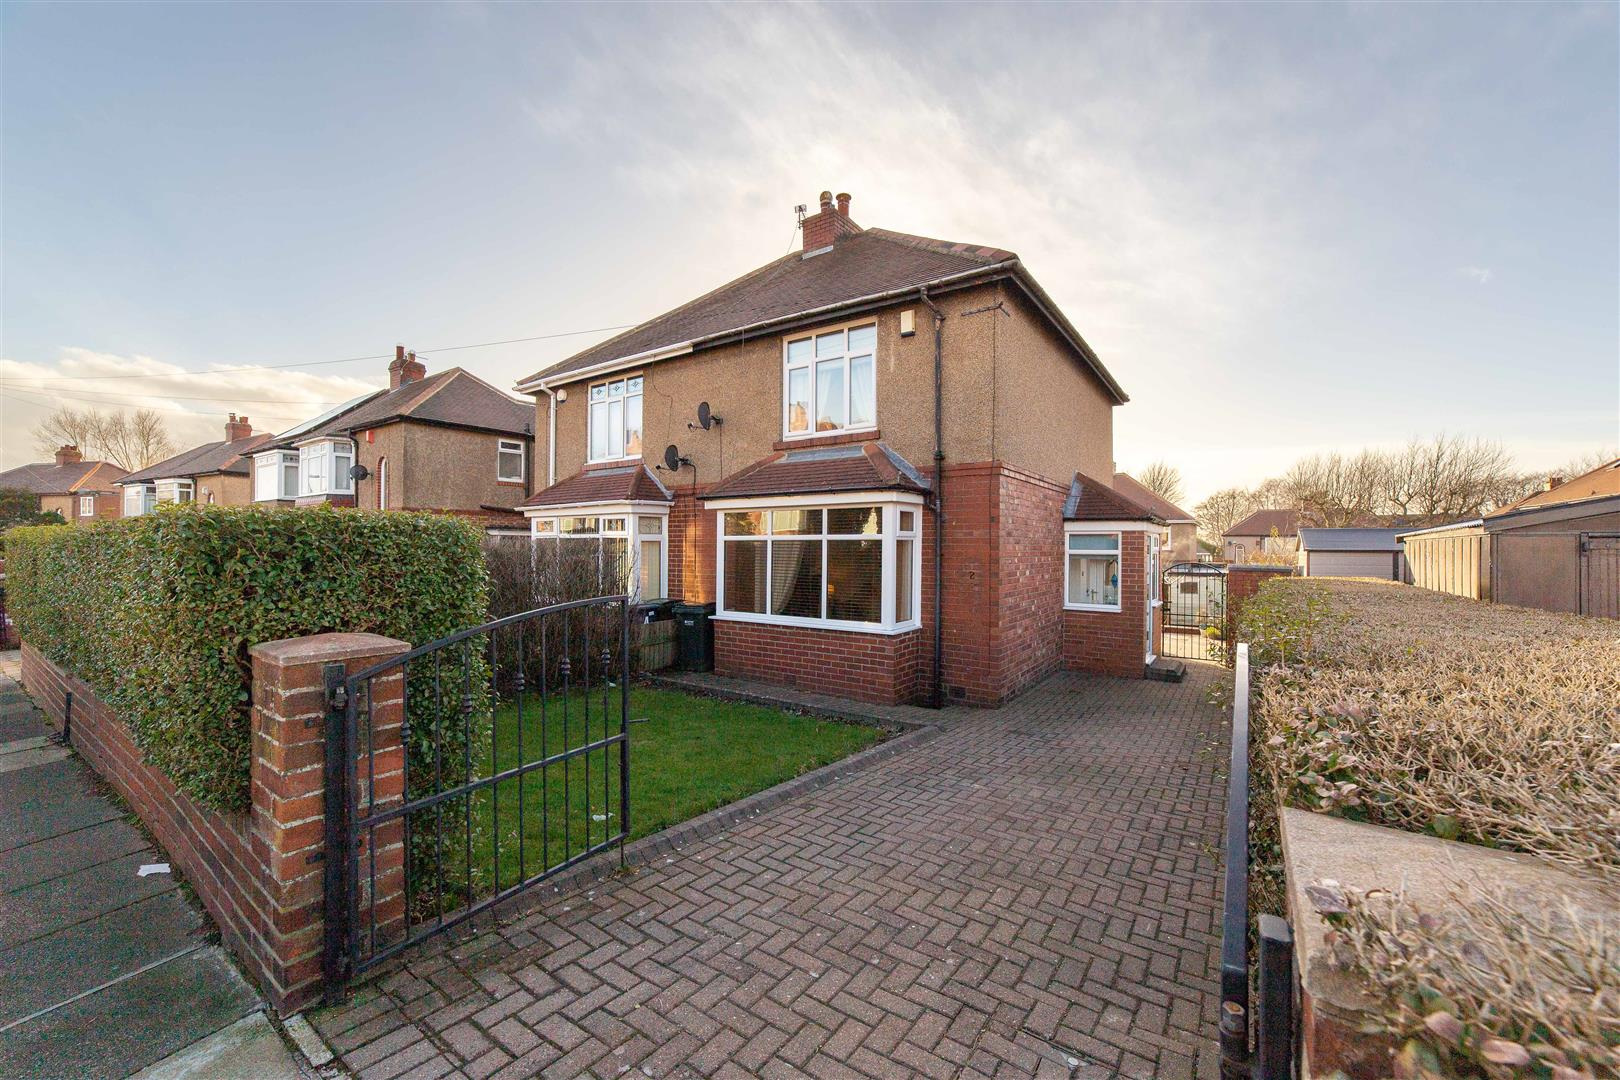 2 bed semi-detached house for sale in Gateshead, NE9 6TL, NE9